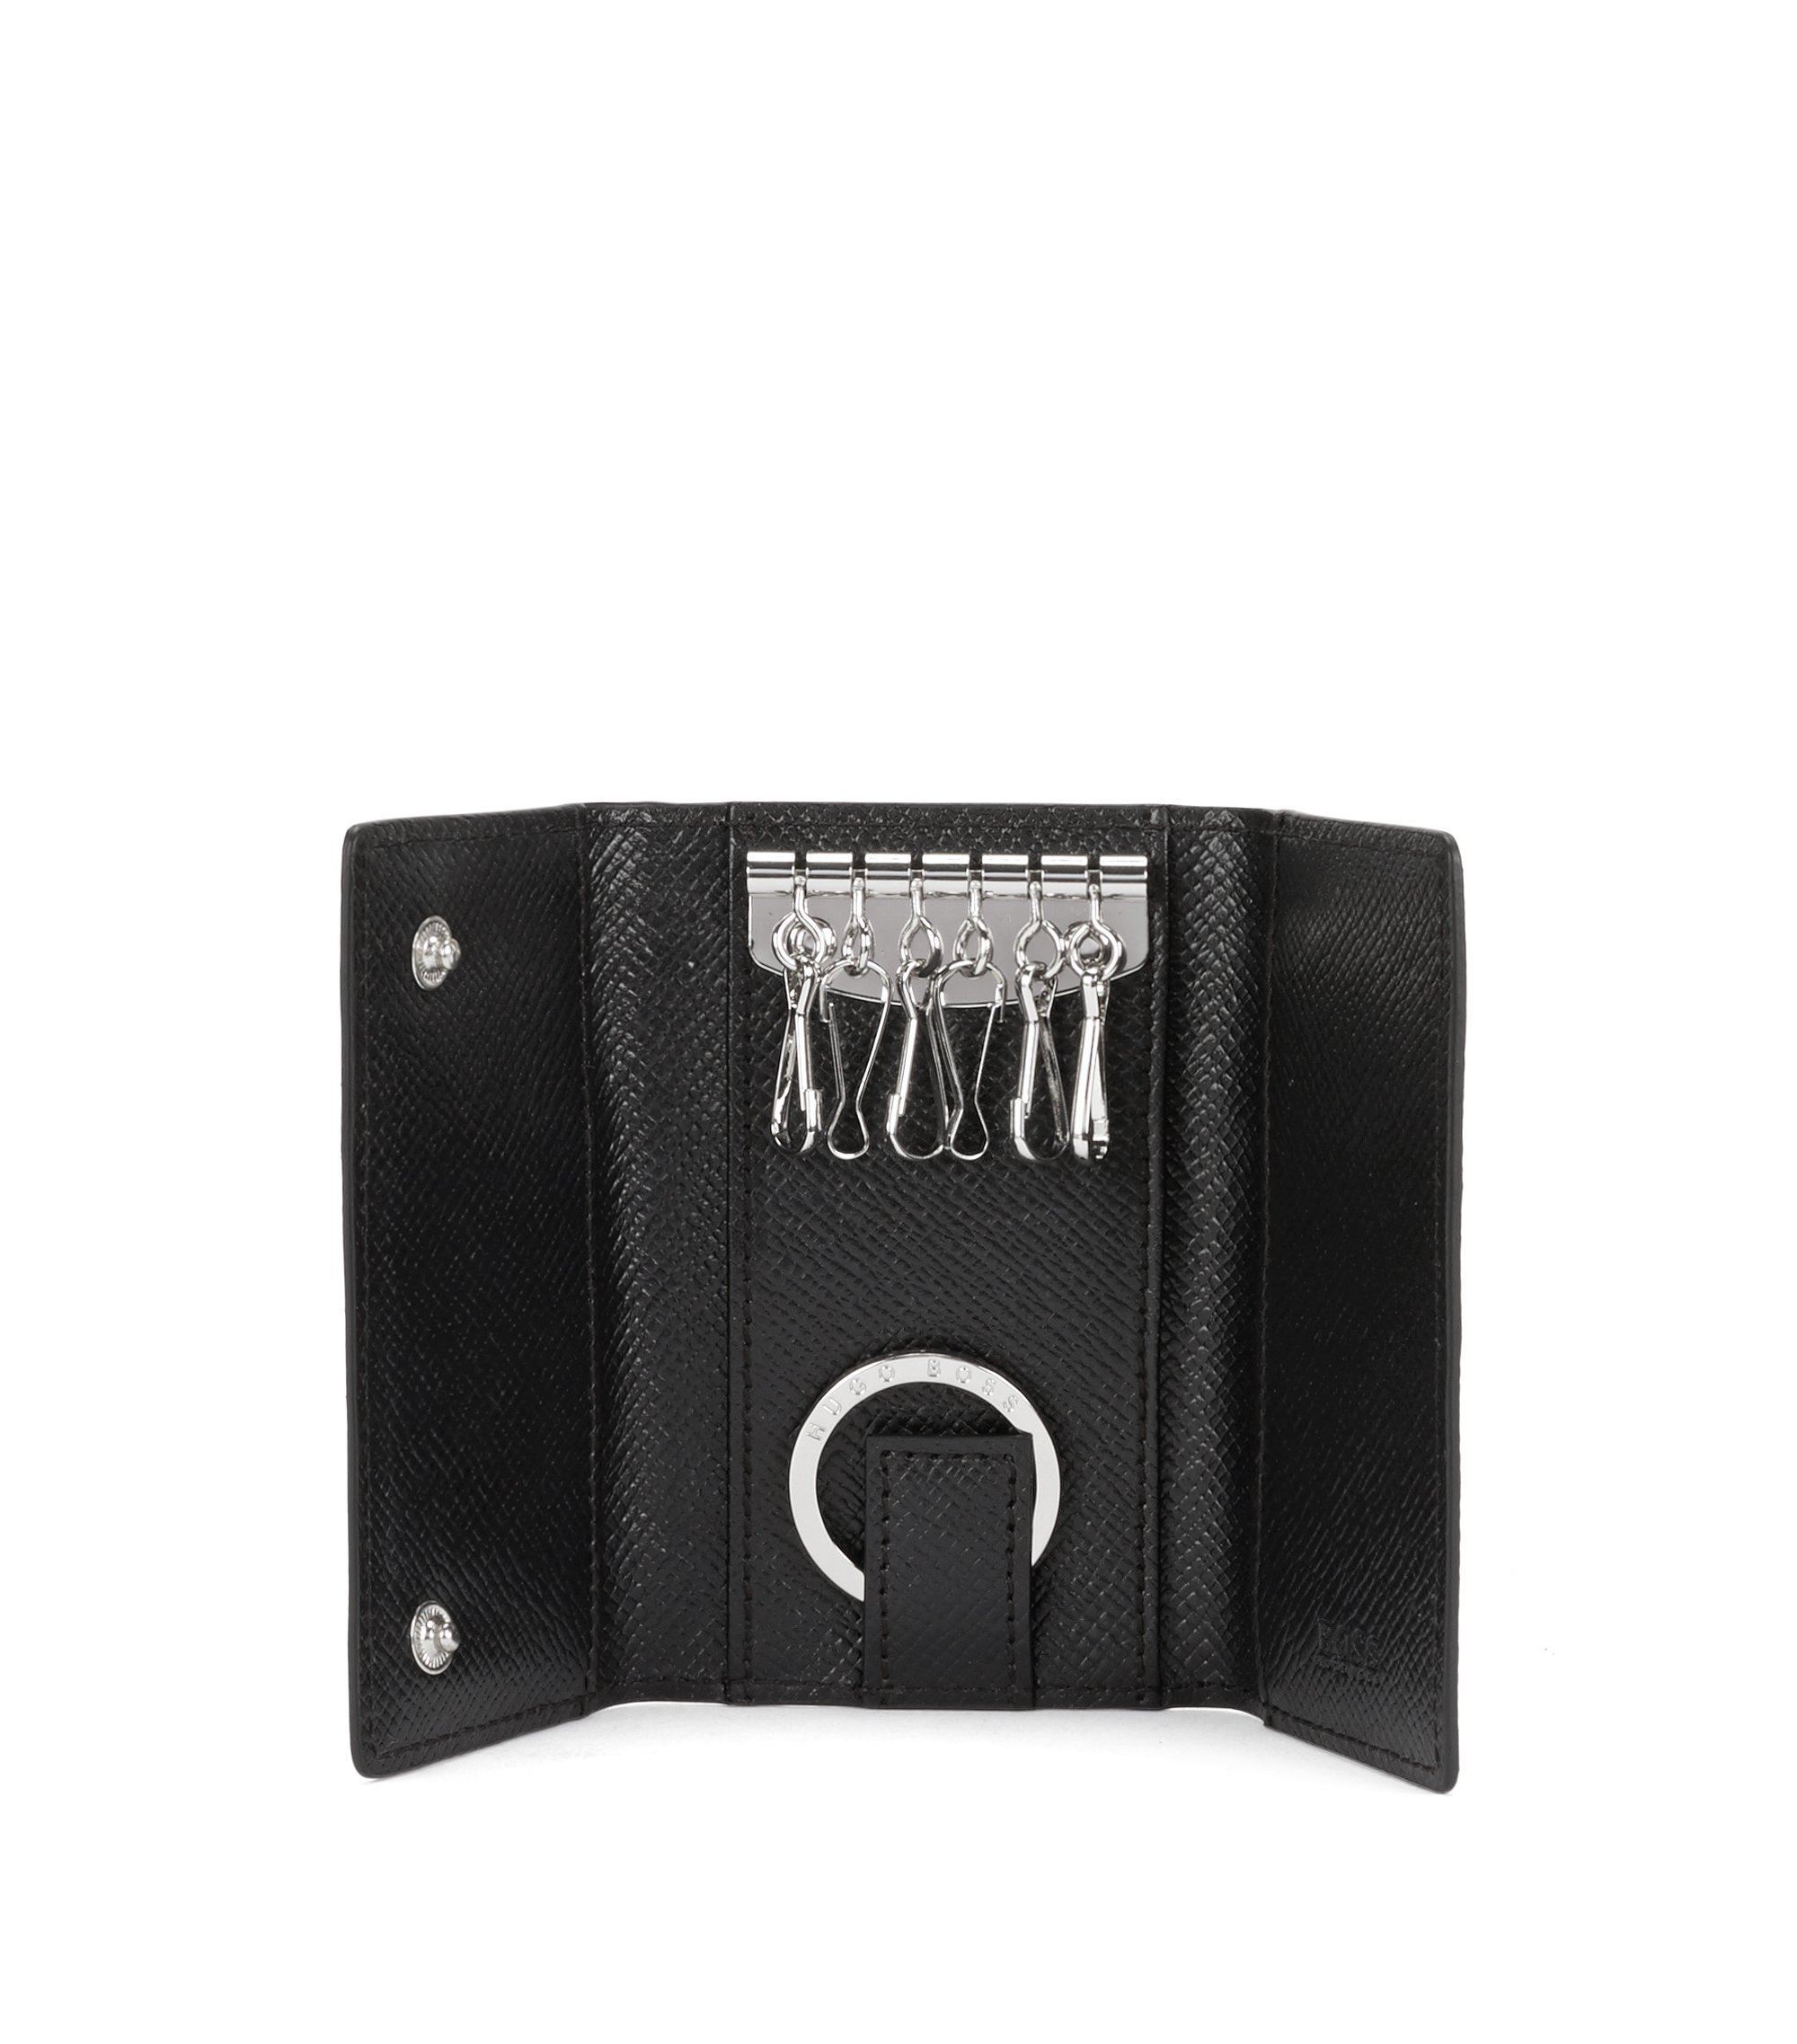 Cartera para llaves en piel de estilo palmellato de la Signature Collection, Negro